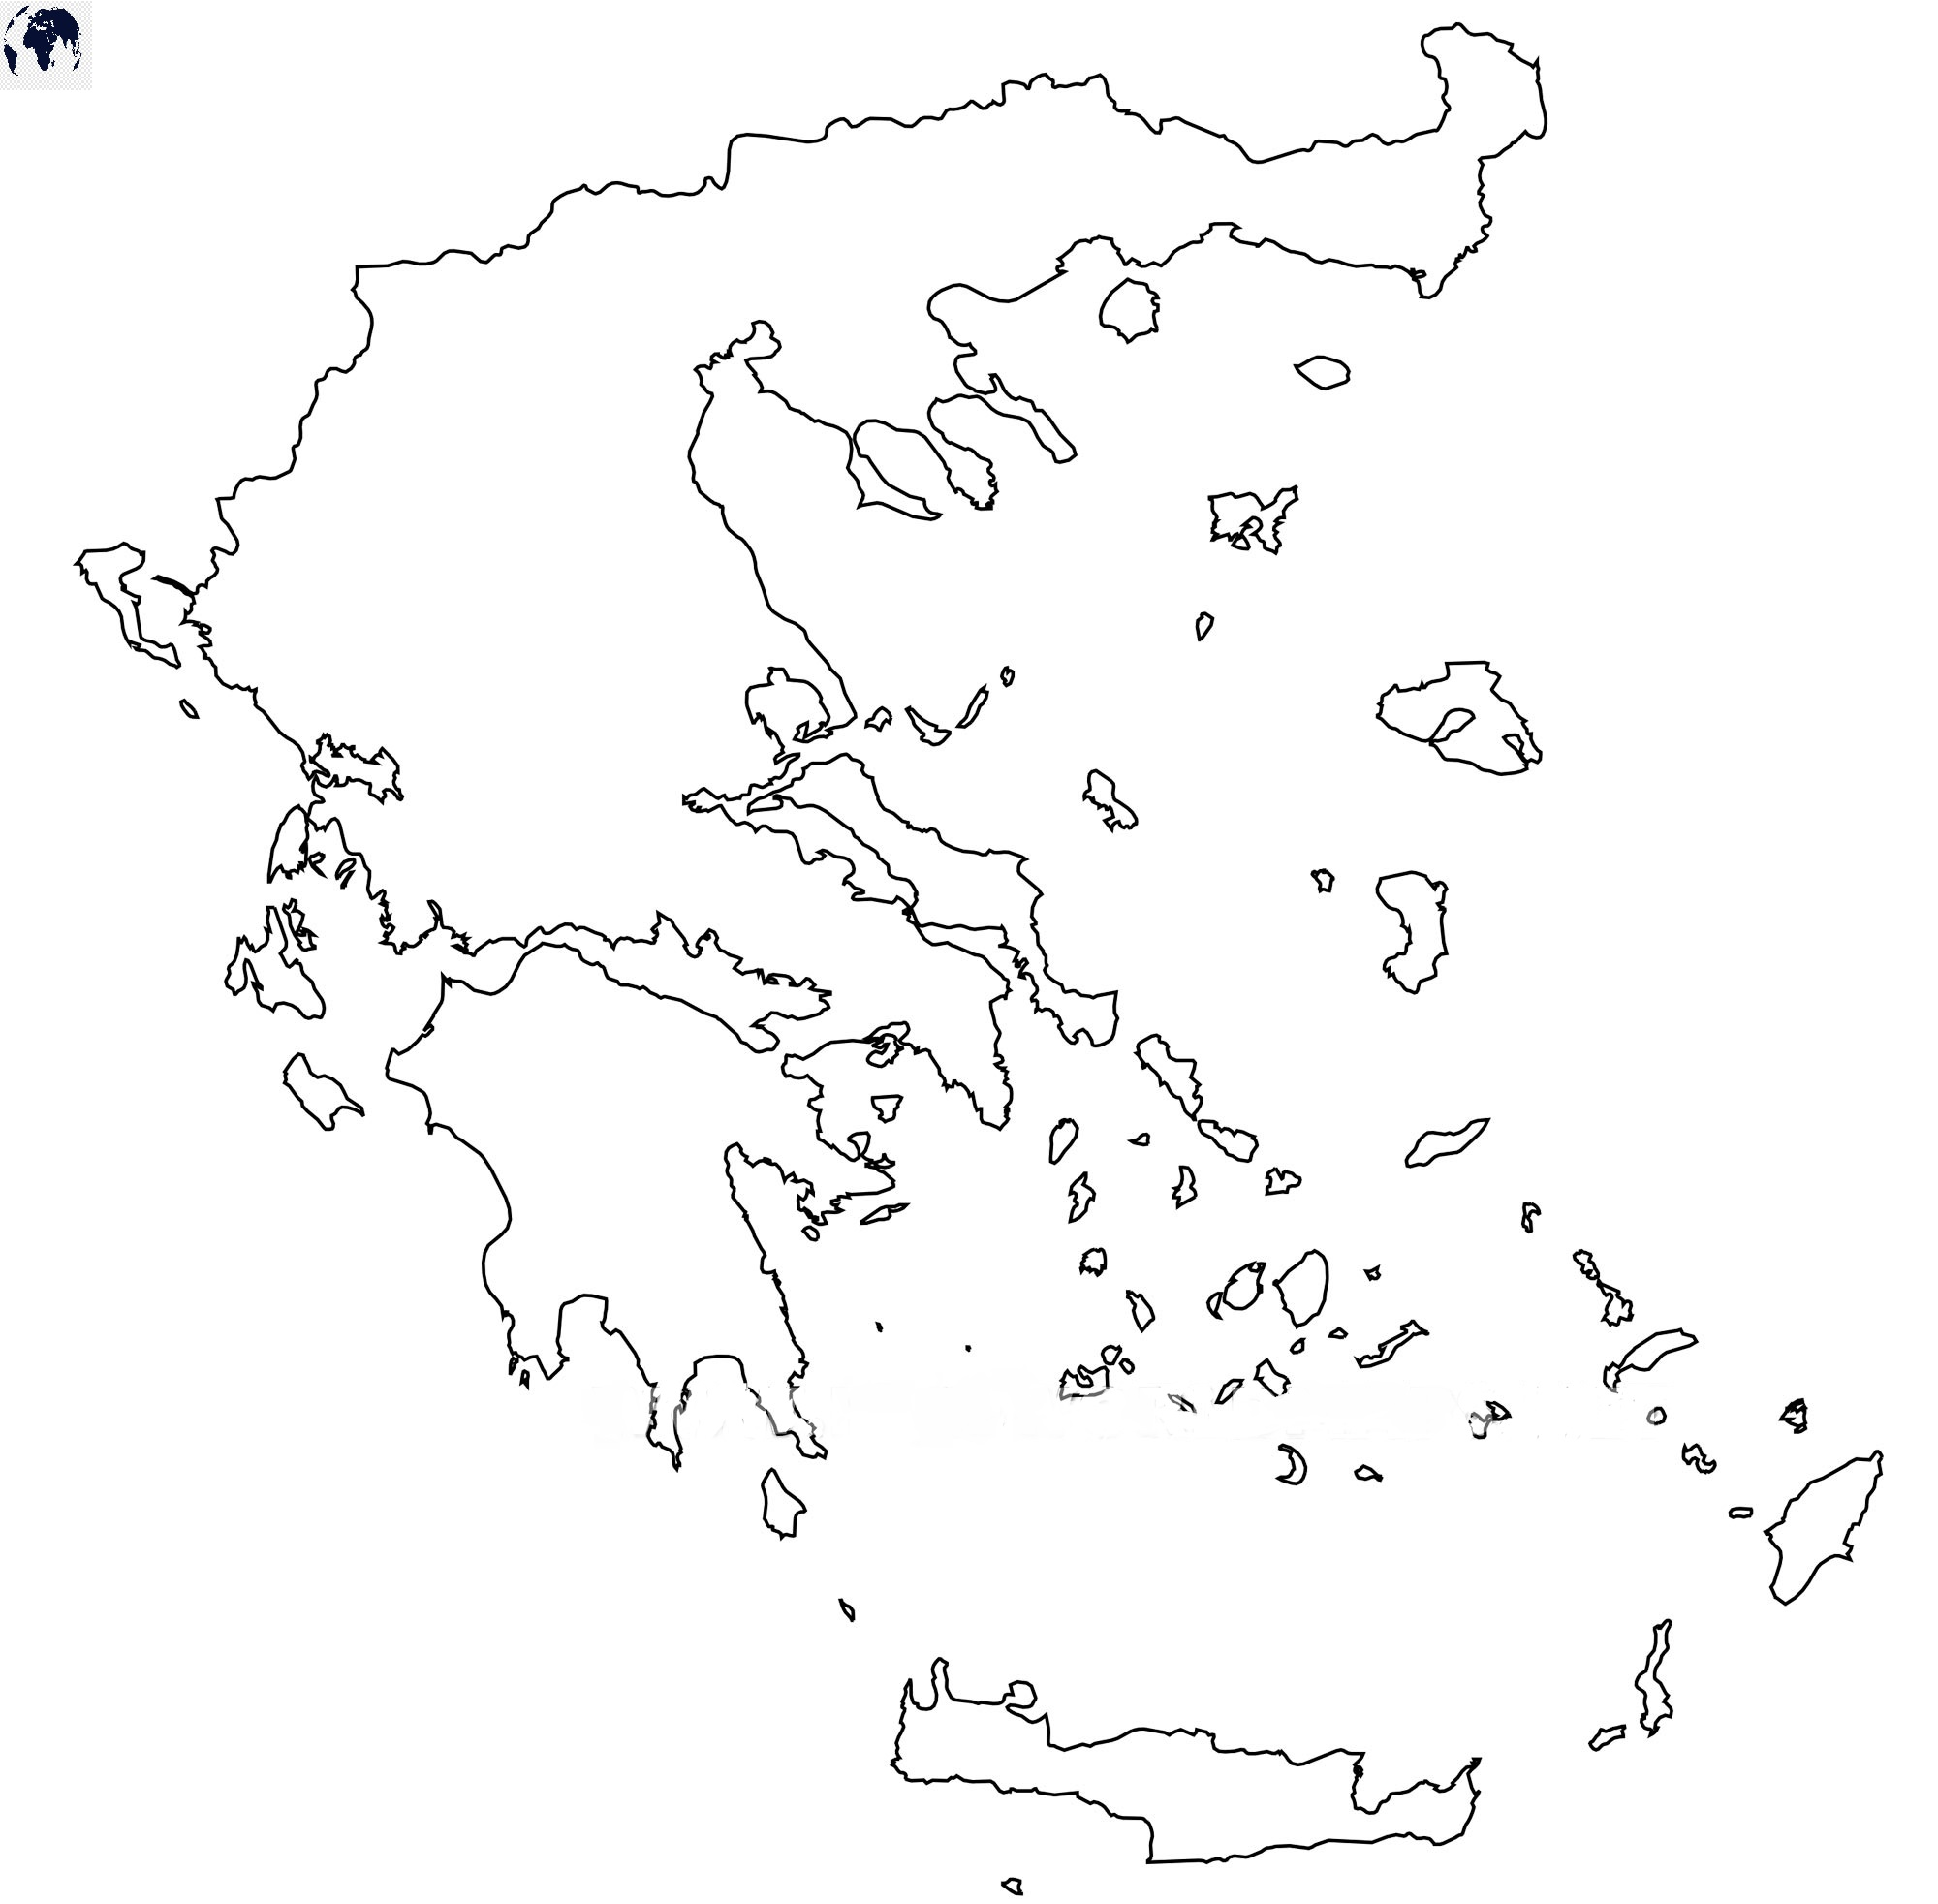 Blank Map of Greece - Outline